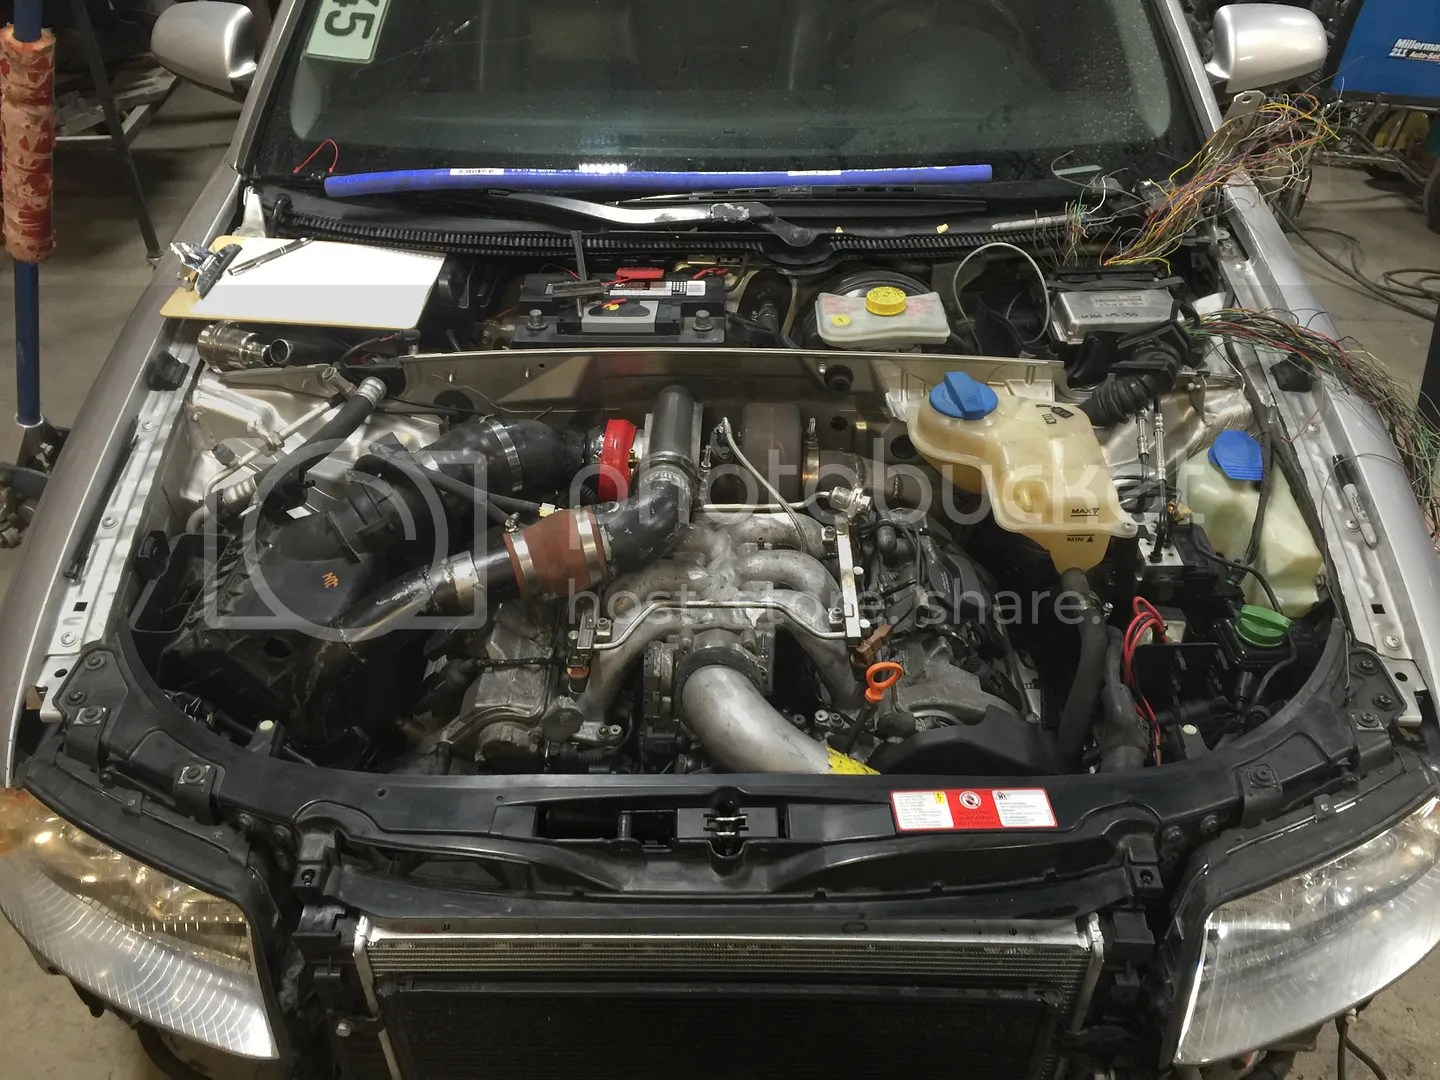 hight resolution of the official b6 2 7t diy swap guide archive page 9 audizine forums 2004 audi s4 b6 v8 engine further mon rail fuel system diagram of